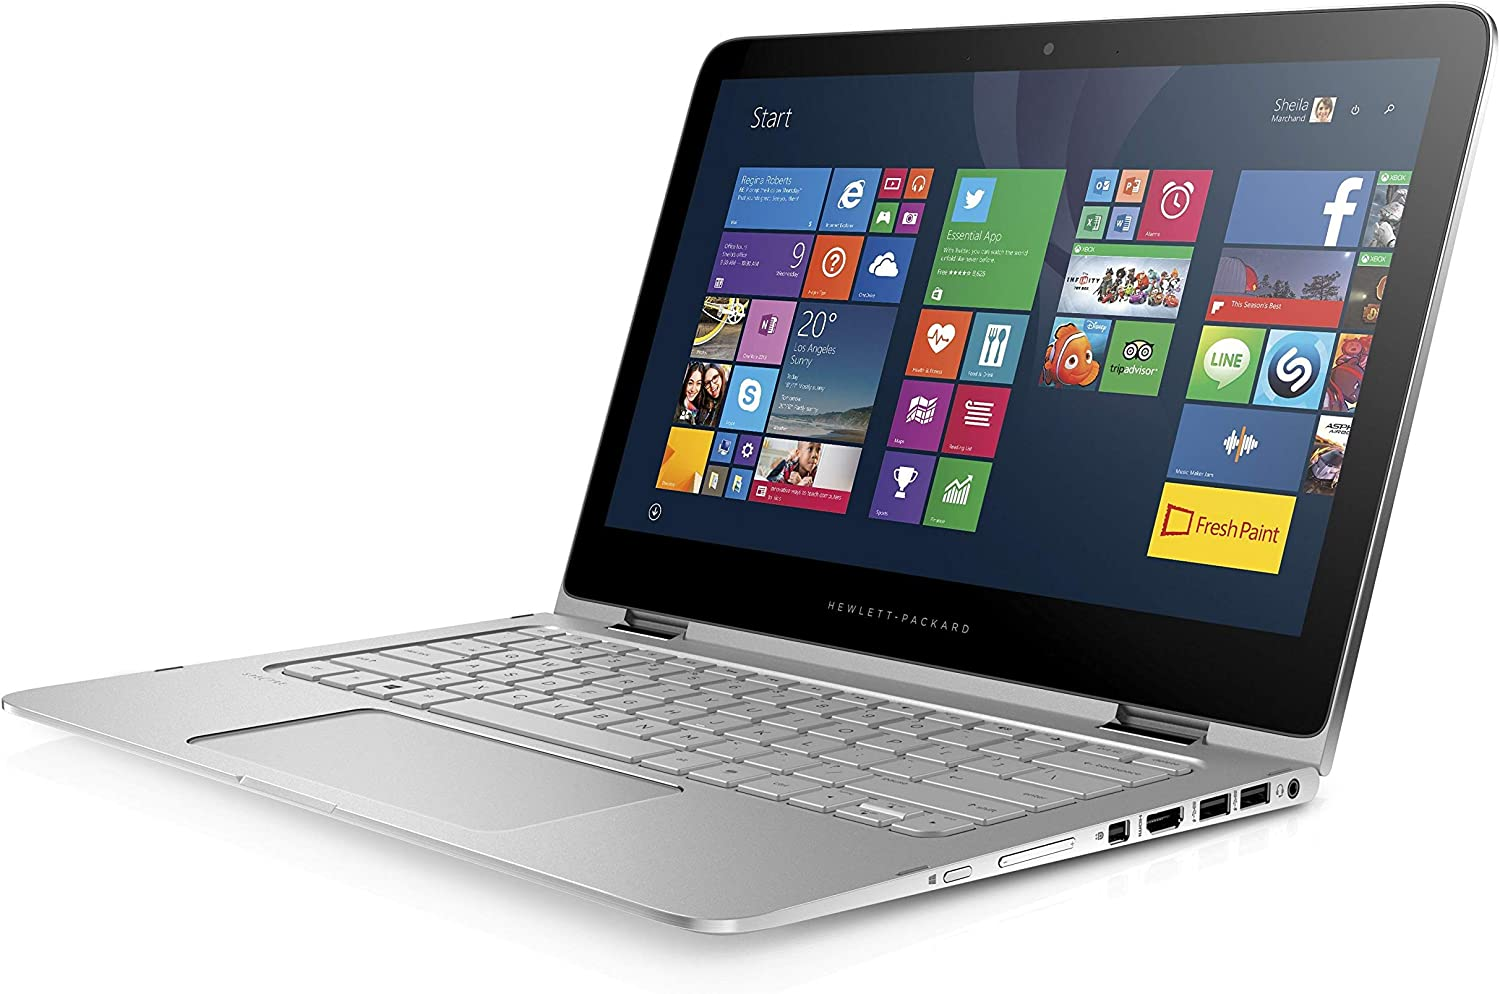 HP Spectre Pro x360 G2 Convertible Touchscreen 13.3in QHD (2560X1440), i7-6600U, 8GB LPDDR3-1600, 512GB SSD, Bluetooth, WiFi, Webcam, Backlit Keyboard, Win 10 Pro (Renewed)